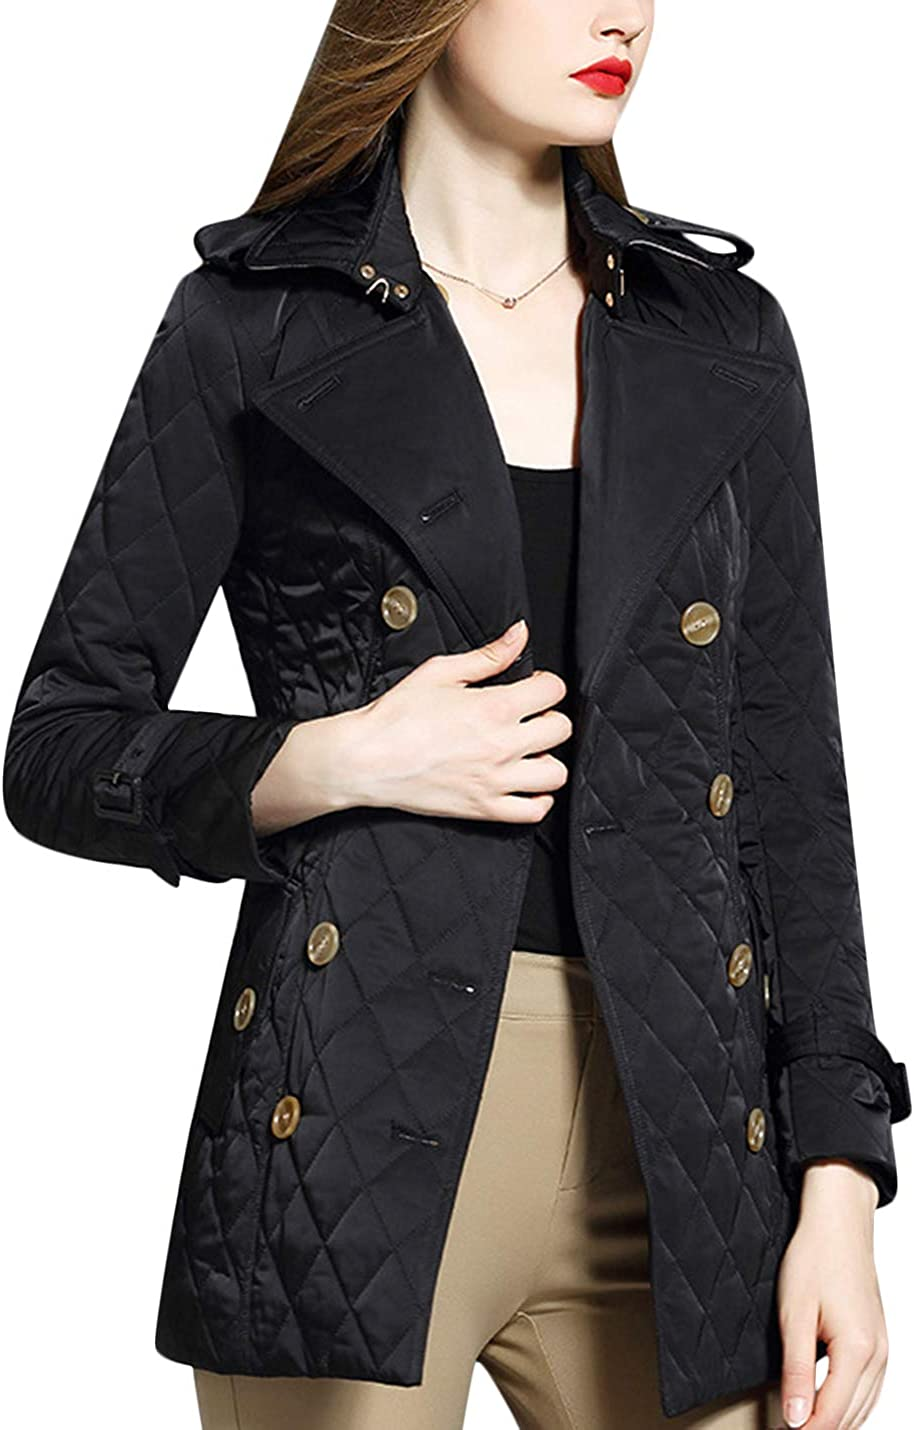 Uaneo Women's Casual Winter Diamond Quilted Long Jacket Coat Outerwear (Small, Black)